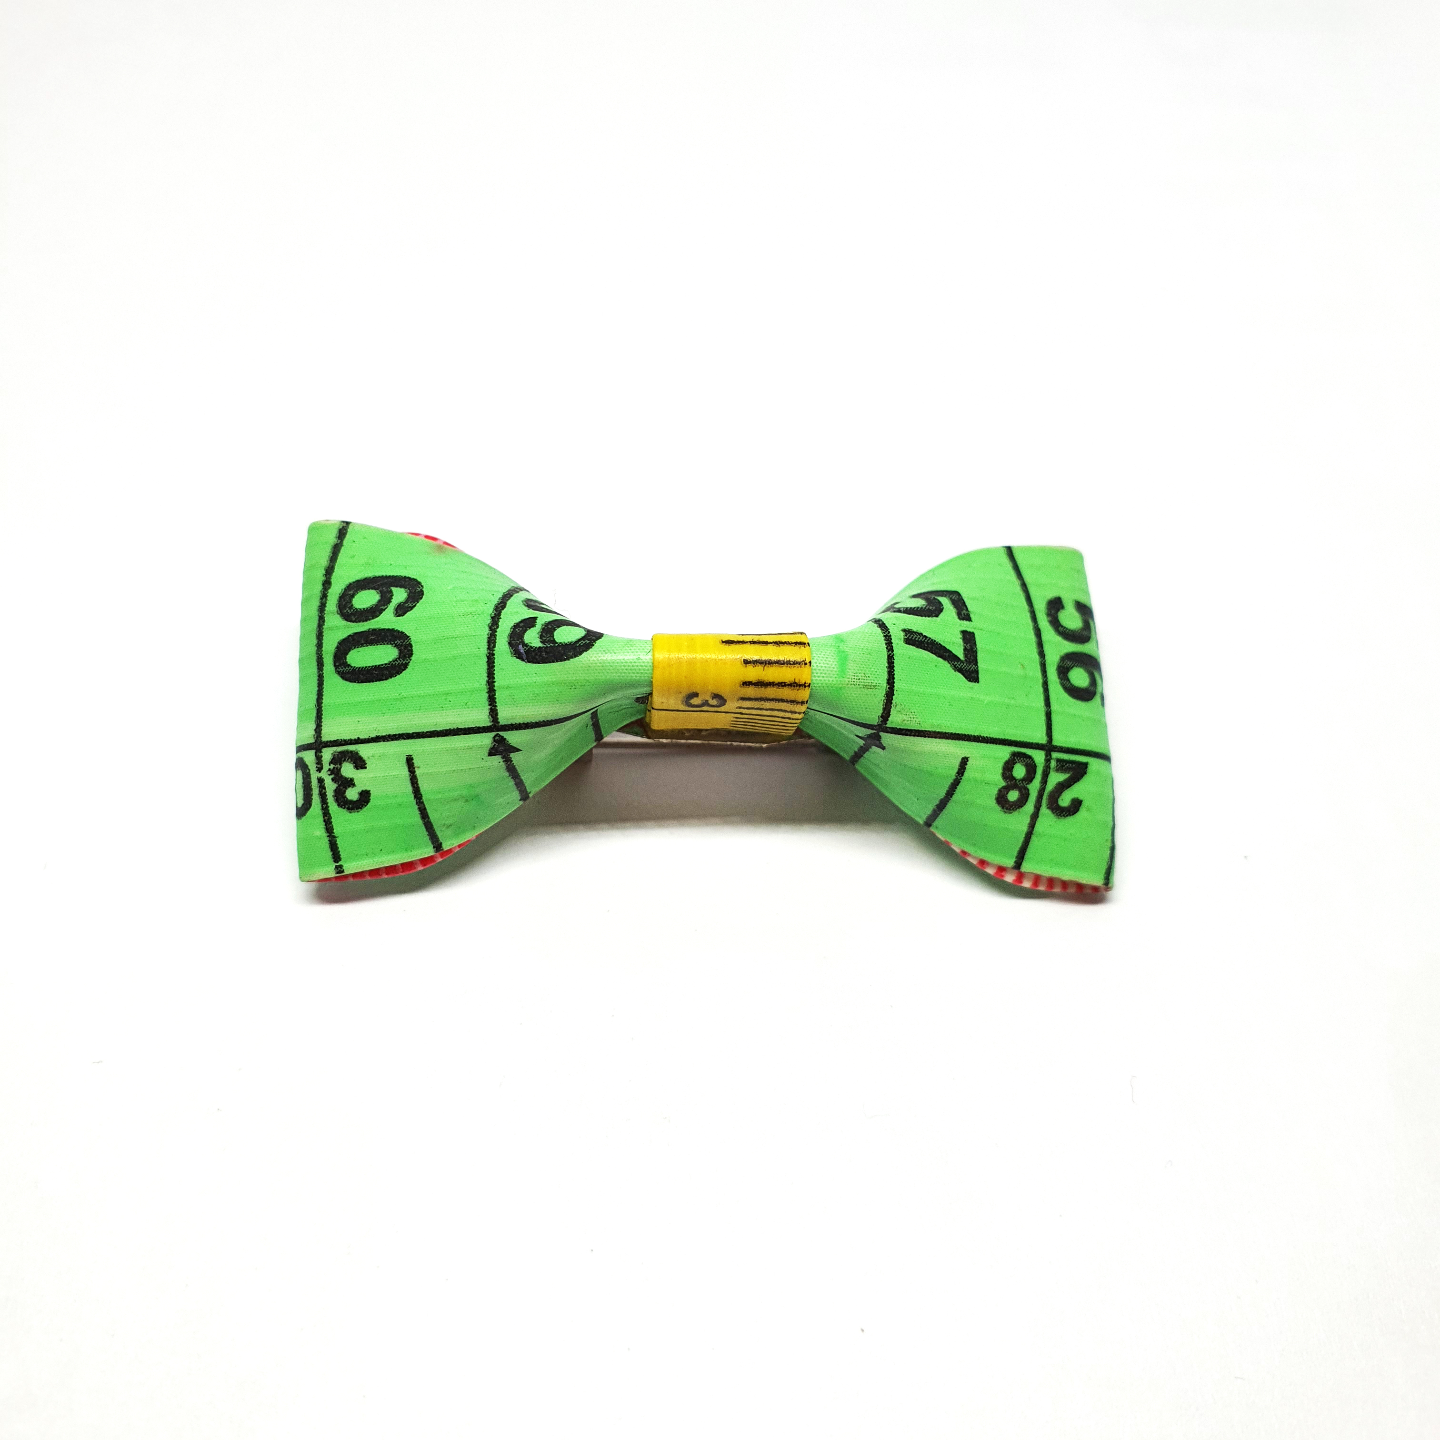 Handmade Accessories Measuring Tape Ribbon Brooches Green by Doe & Audrey